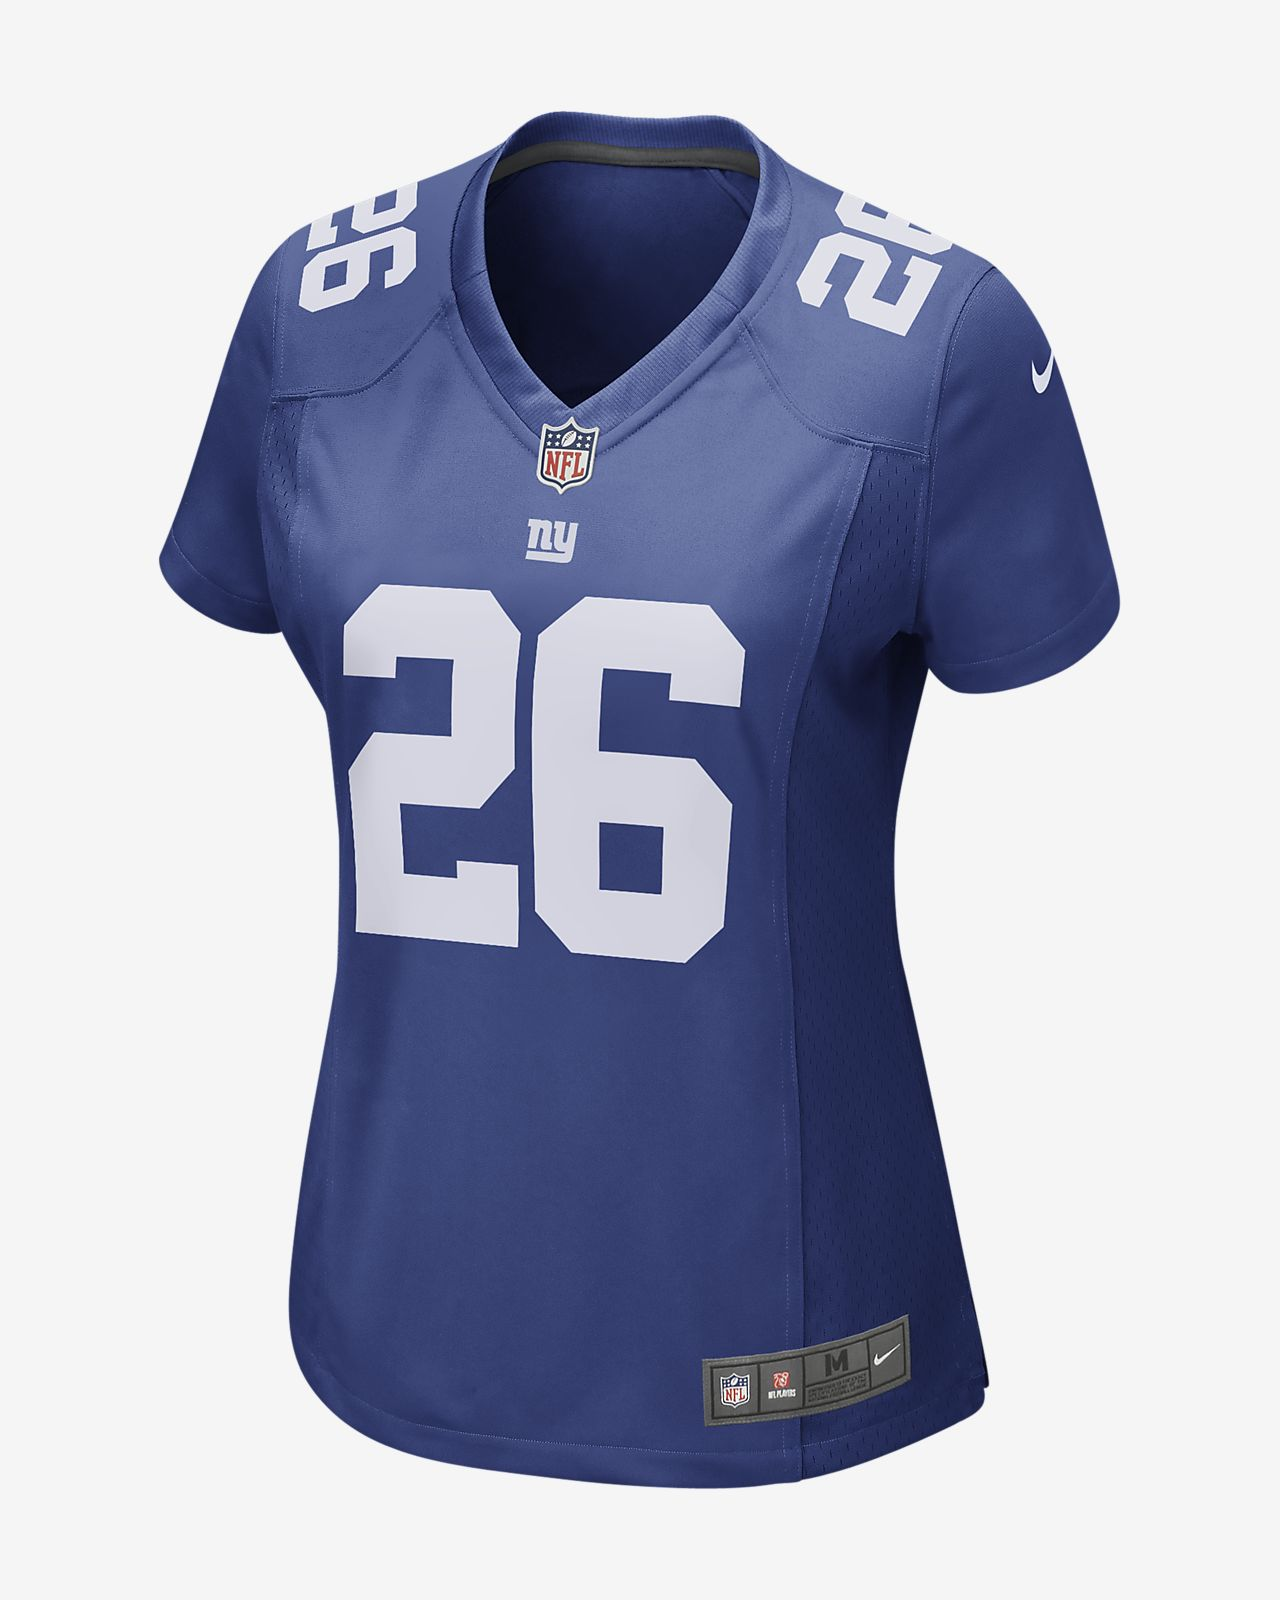 6032cb830 NFL New York Giants Game (Saquon Barkley) Women s Football Jersey ...